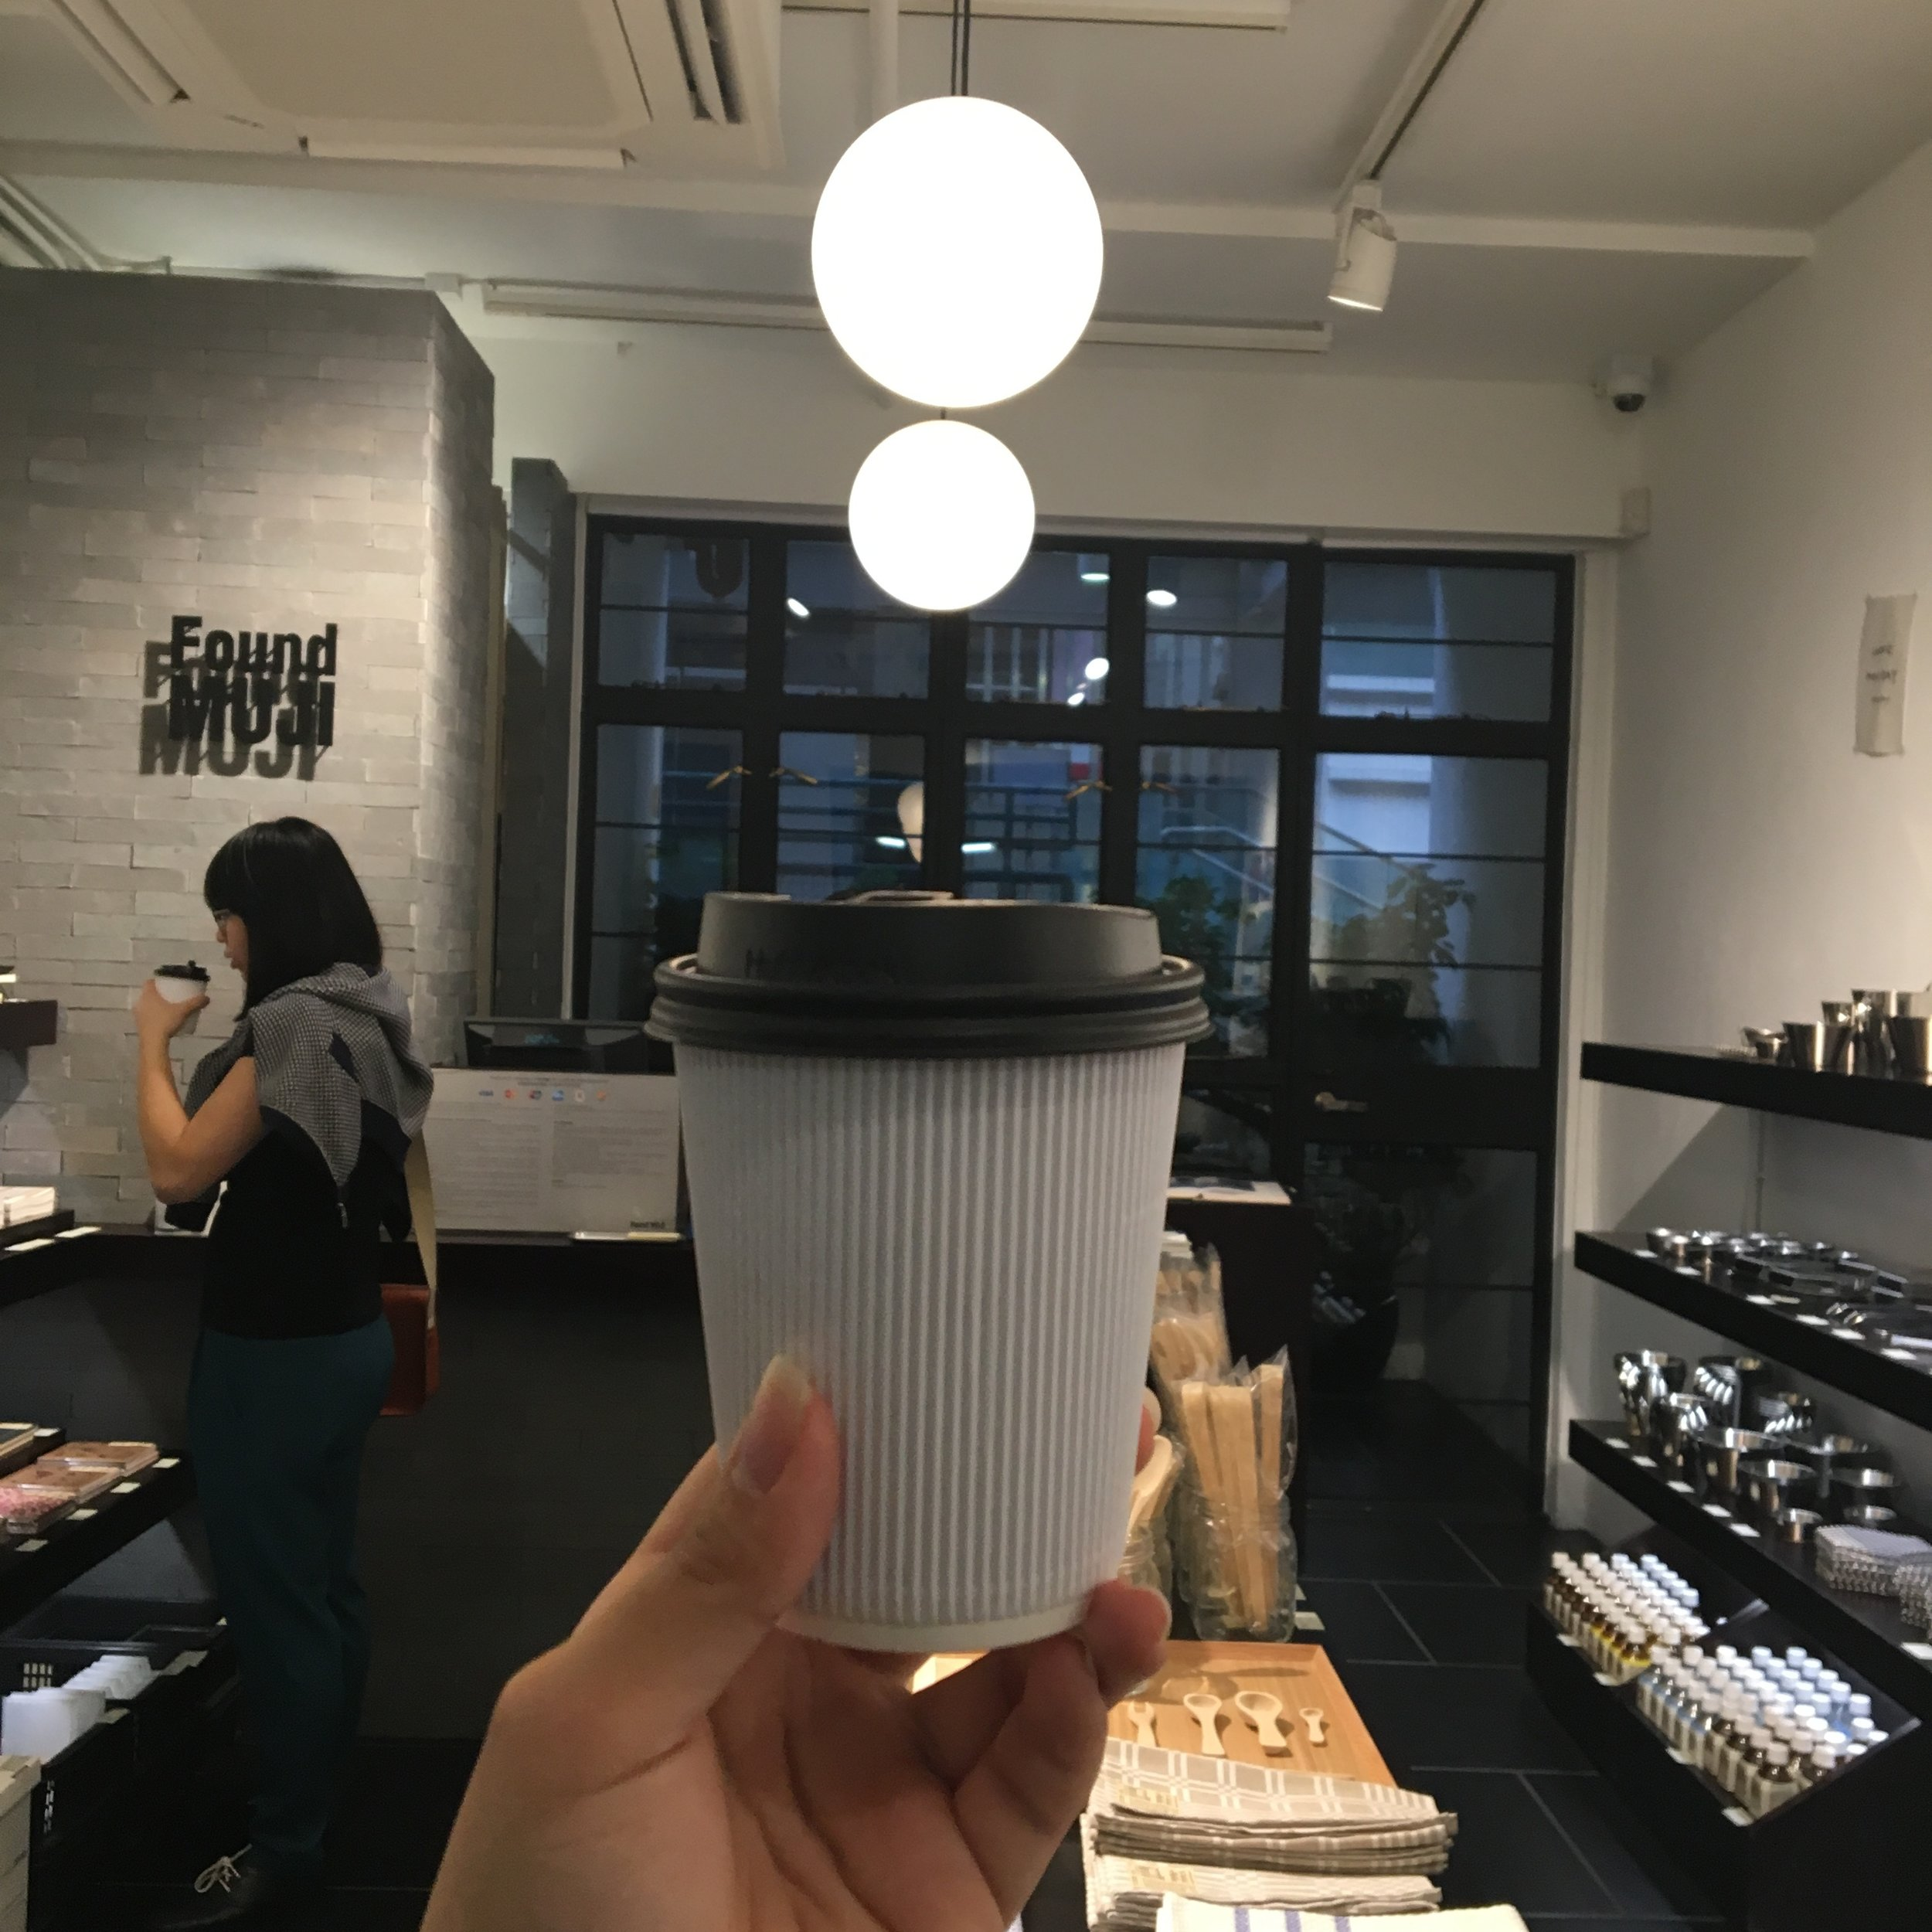 Who doesn't love MUJI! Found Muji @PMQ yay (p.s. I got coffee from the cafe next door, not here hehe)